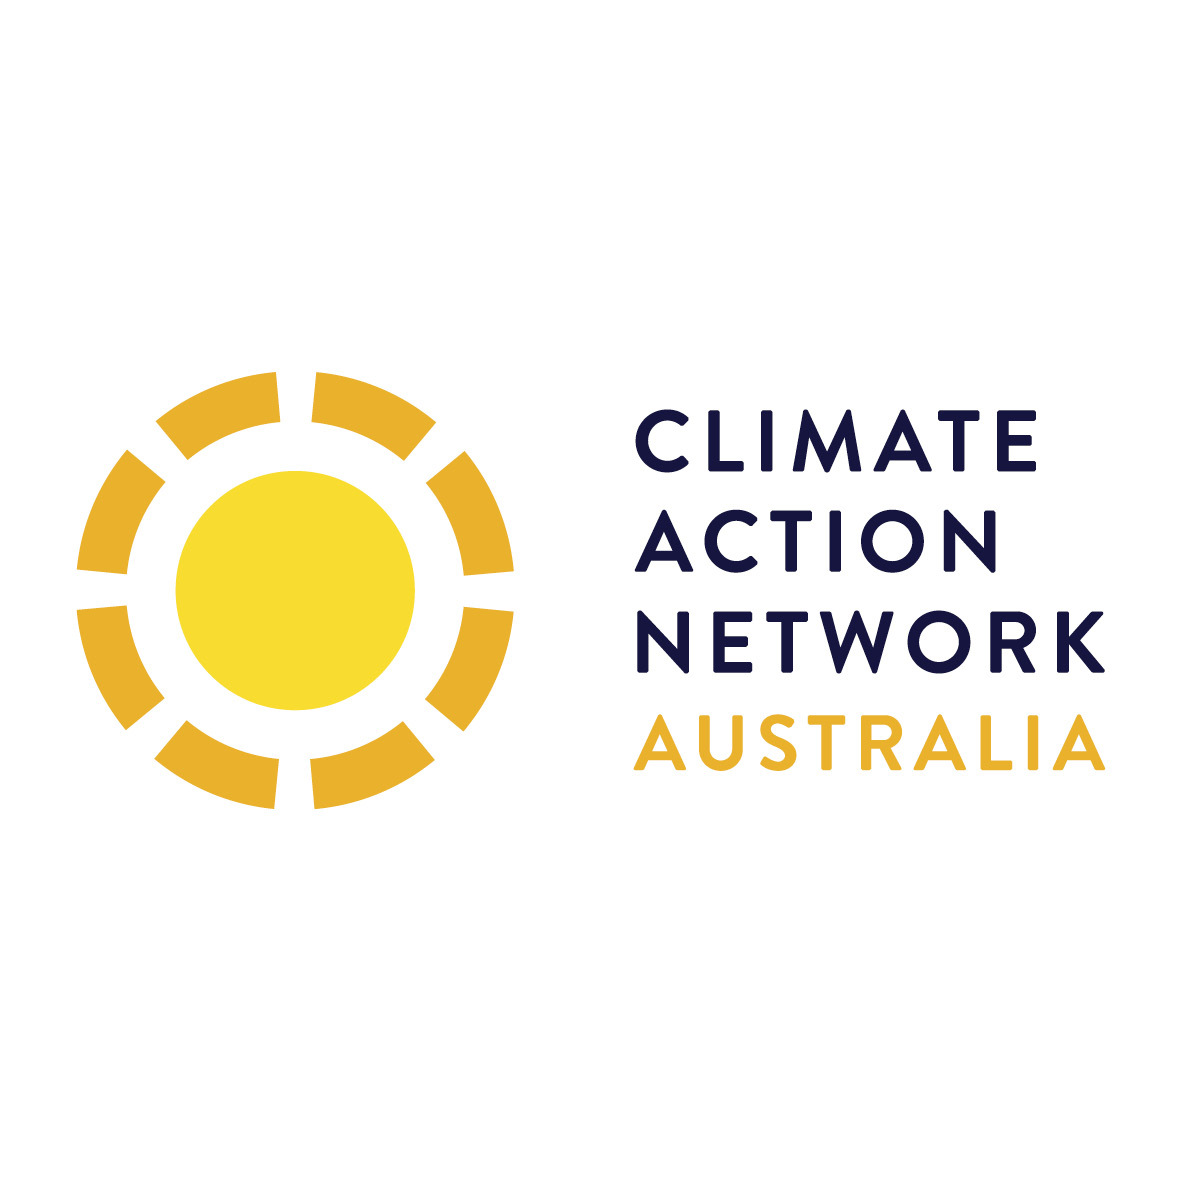 Profile of Climate Action Network Australia